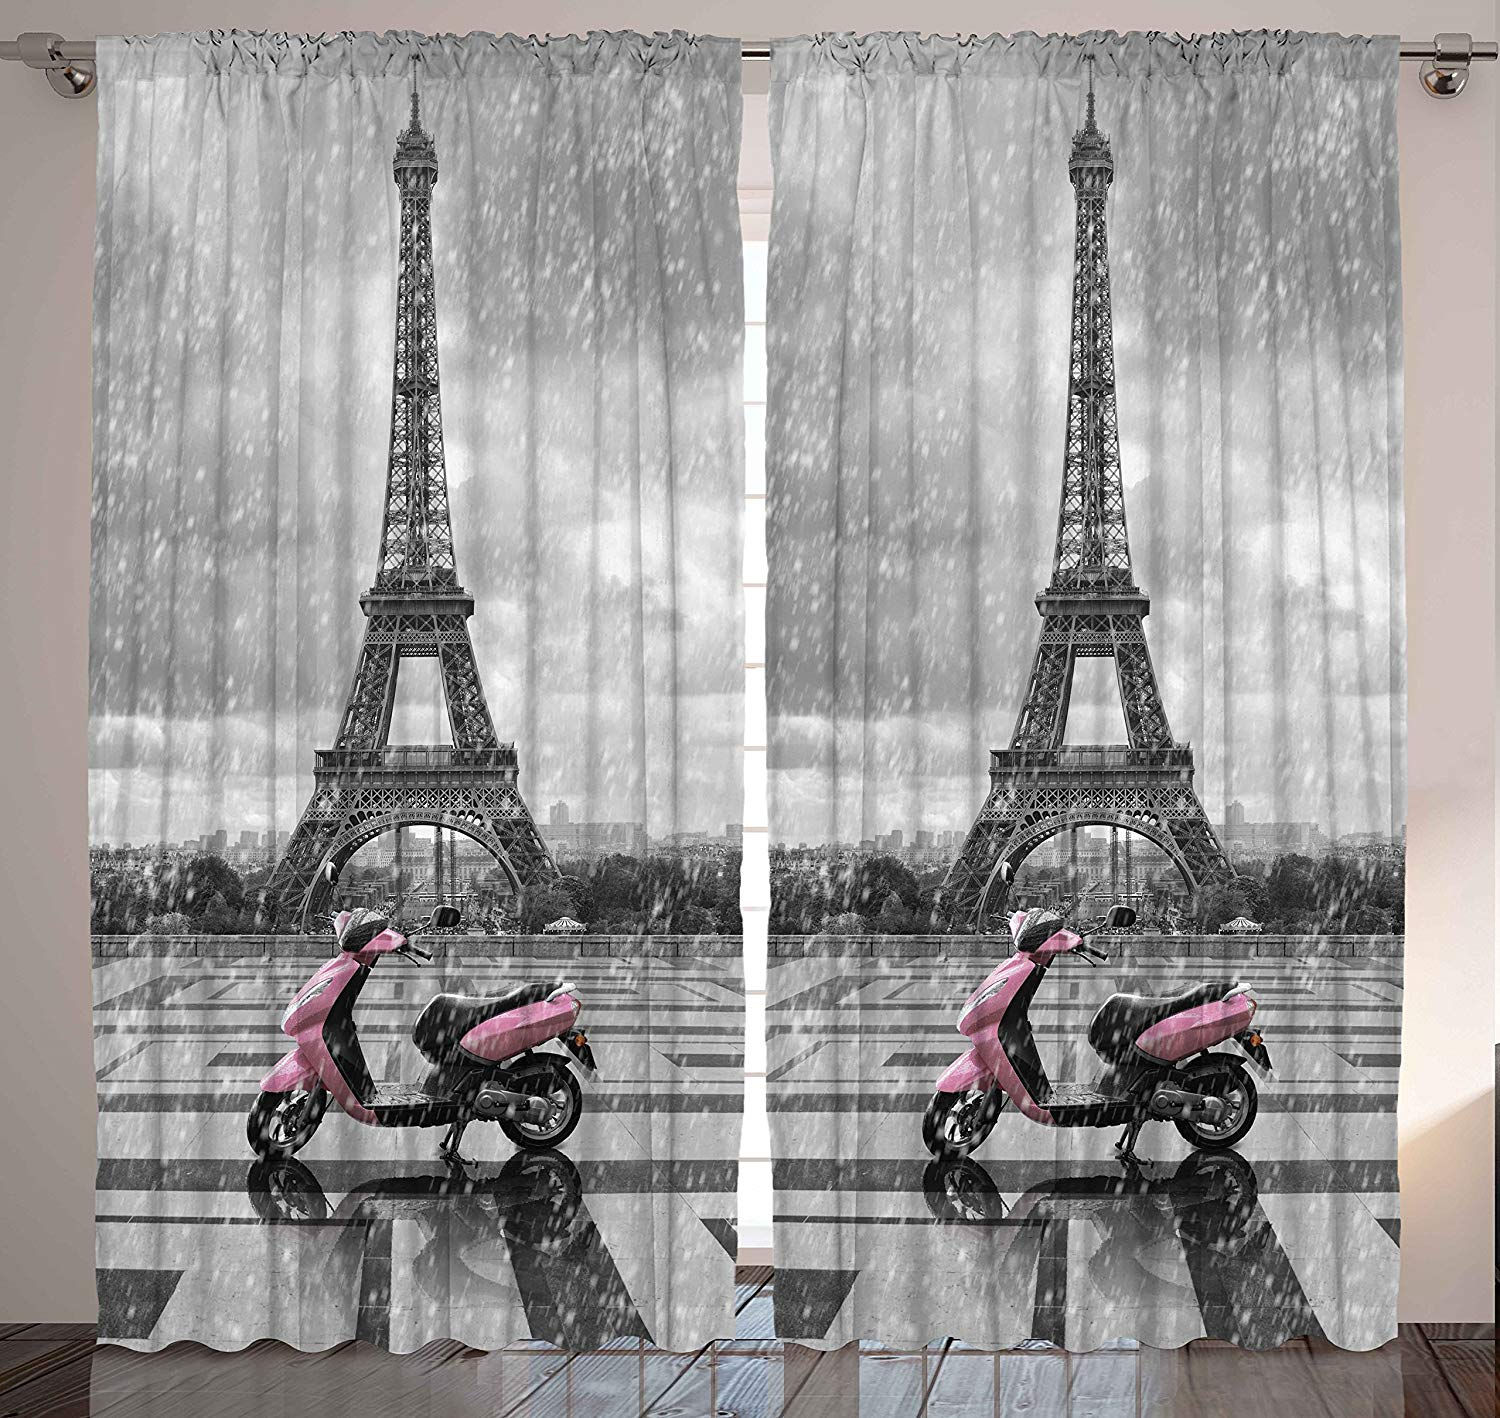 Us 13 34 50 Off Grey Curtains Eiffel Tower Paris Scene Gray And Pink Monochrome Bedroom Living For Kids Dining Room Window D In